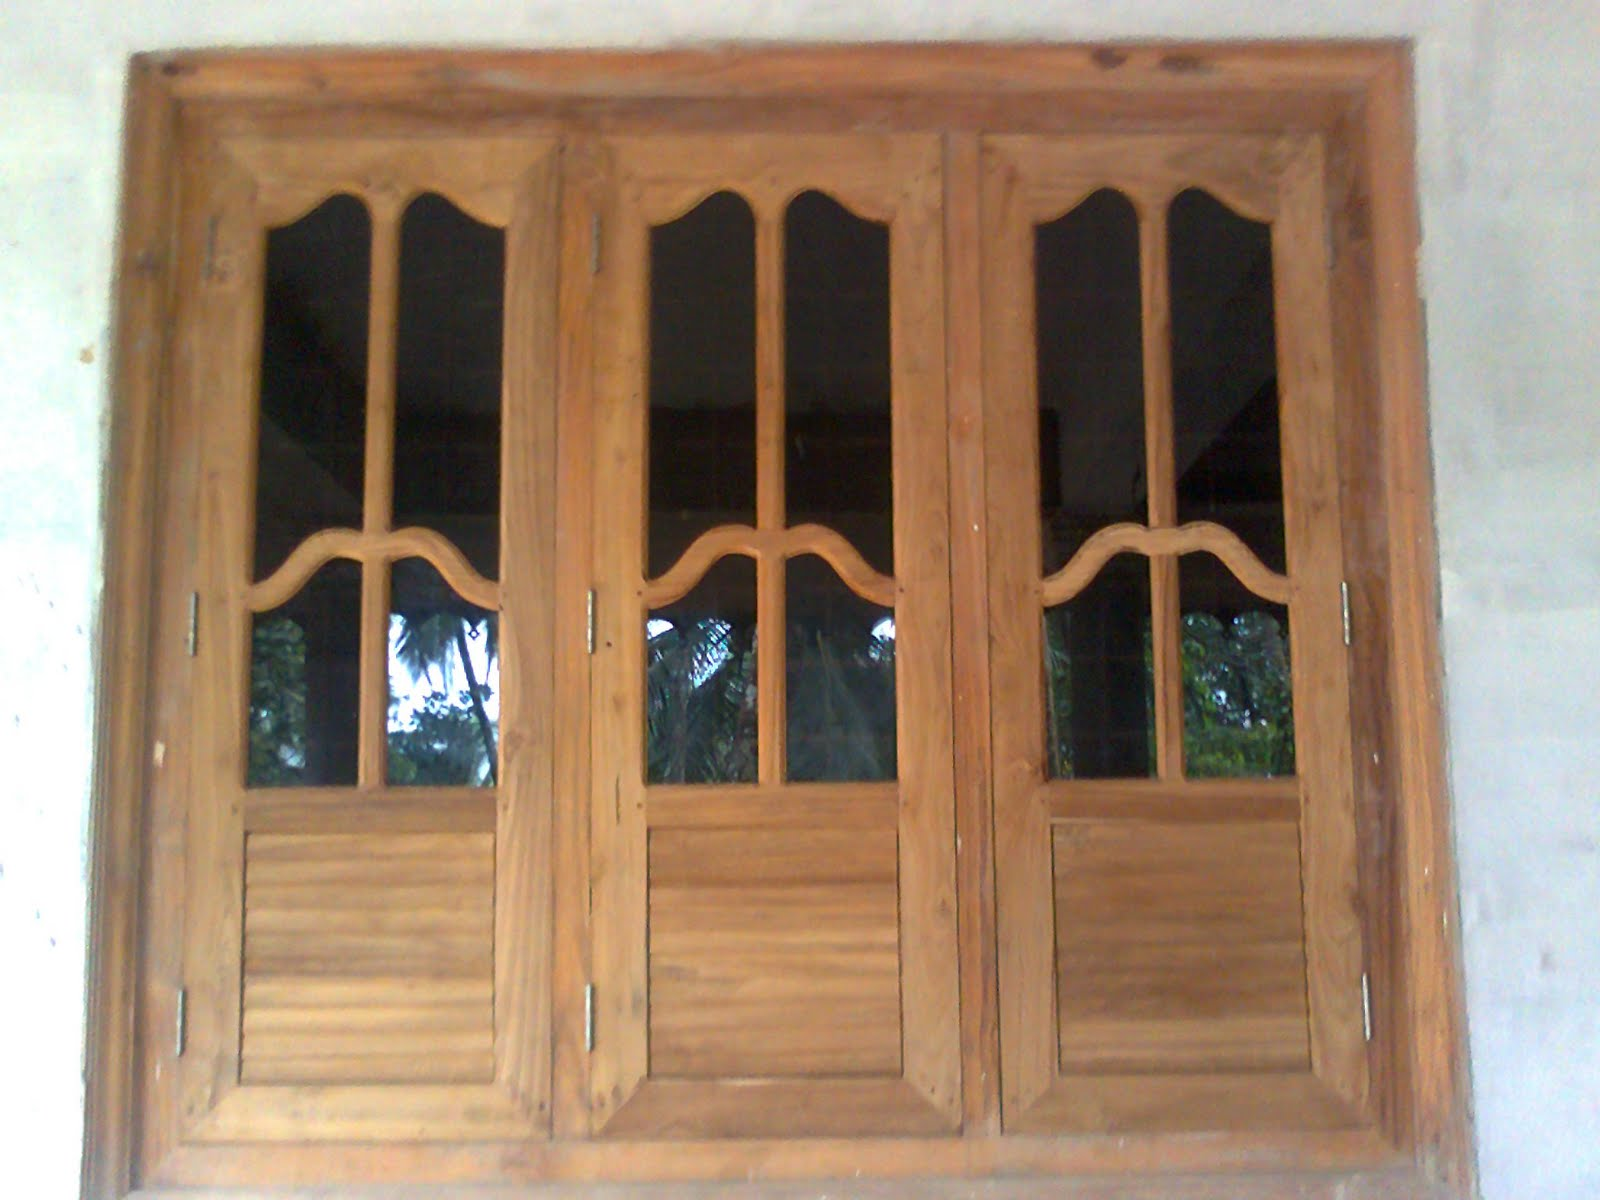 Bavas wood works wooden window doors simple designs for Window door design